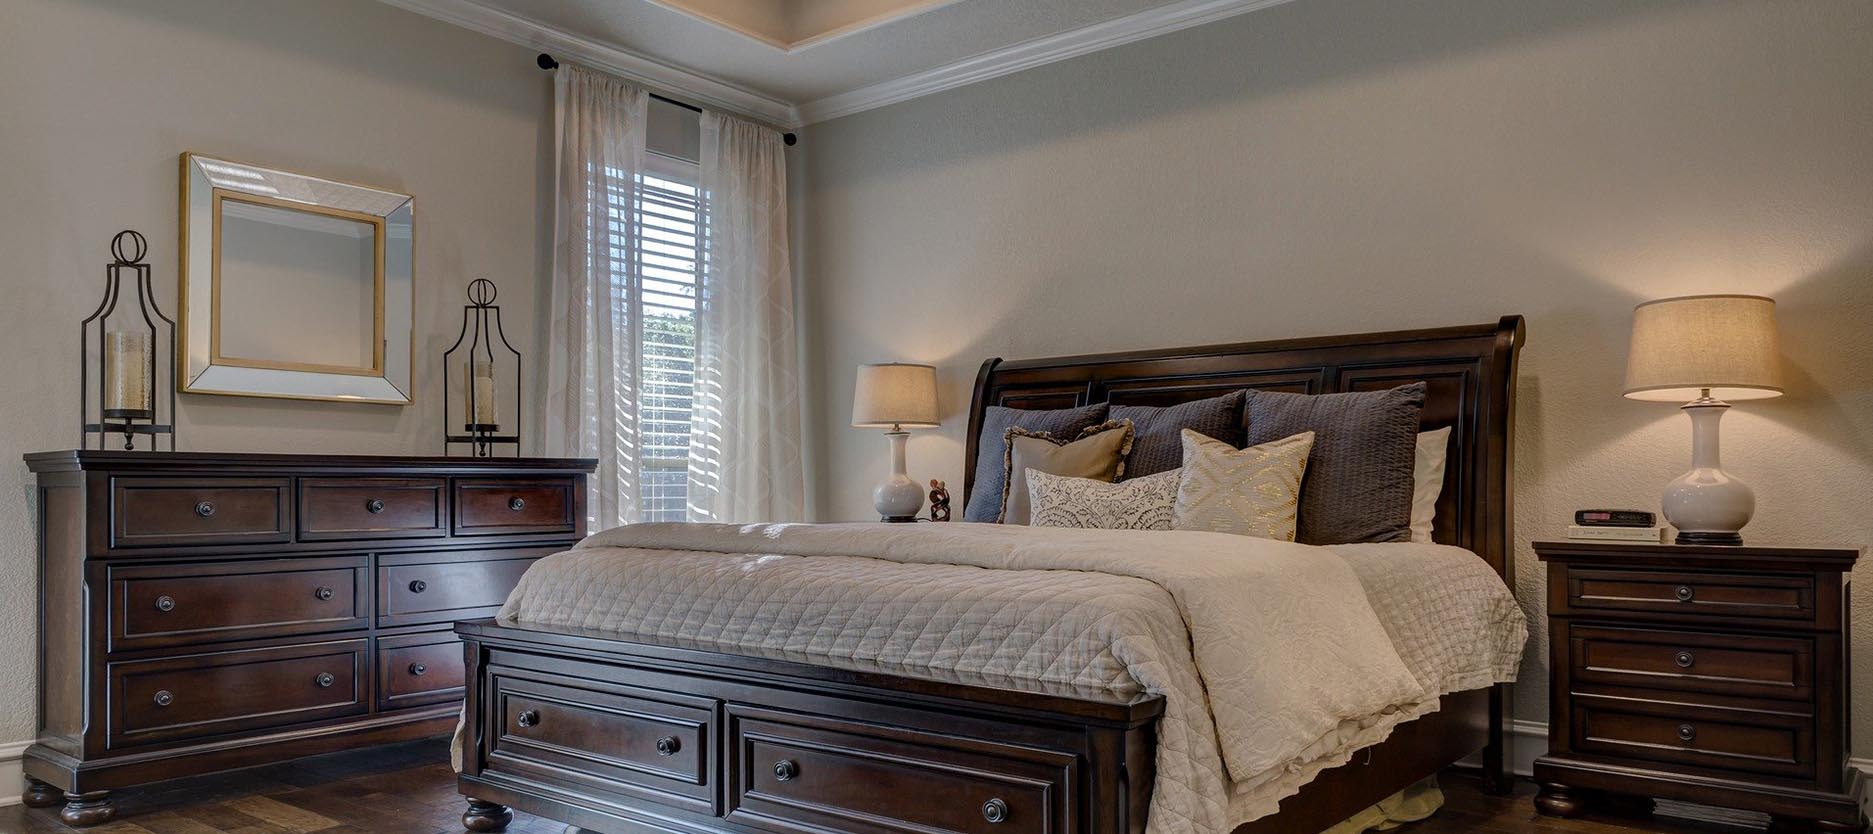 Top 5 Decor Ideas for an Elegant Look to Guest Room